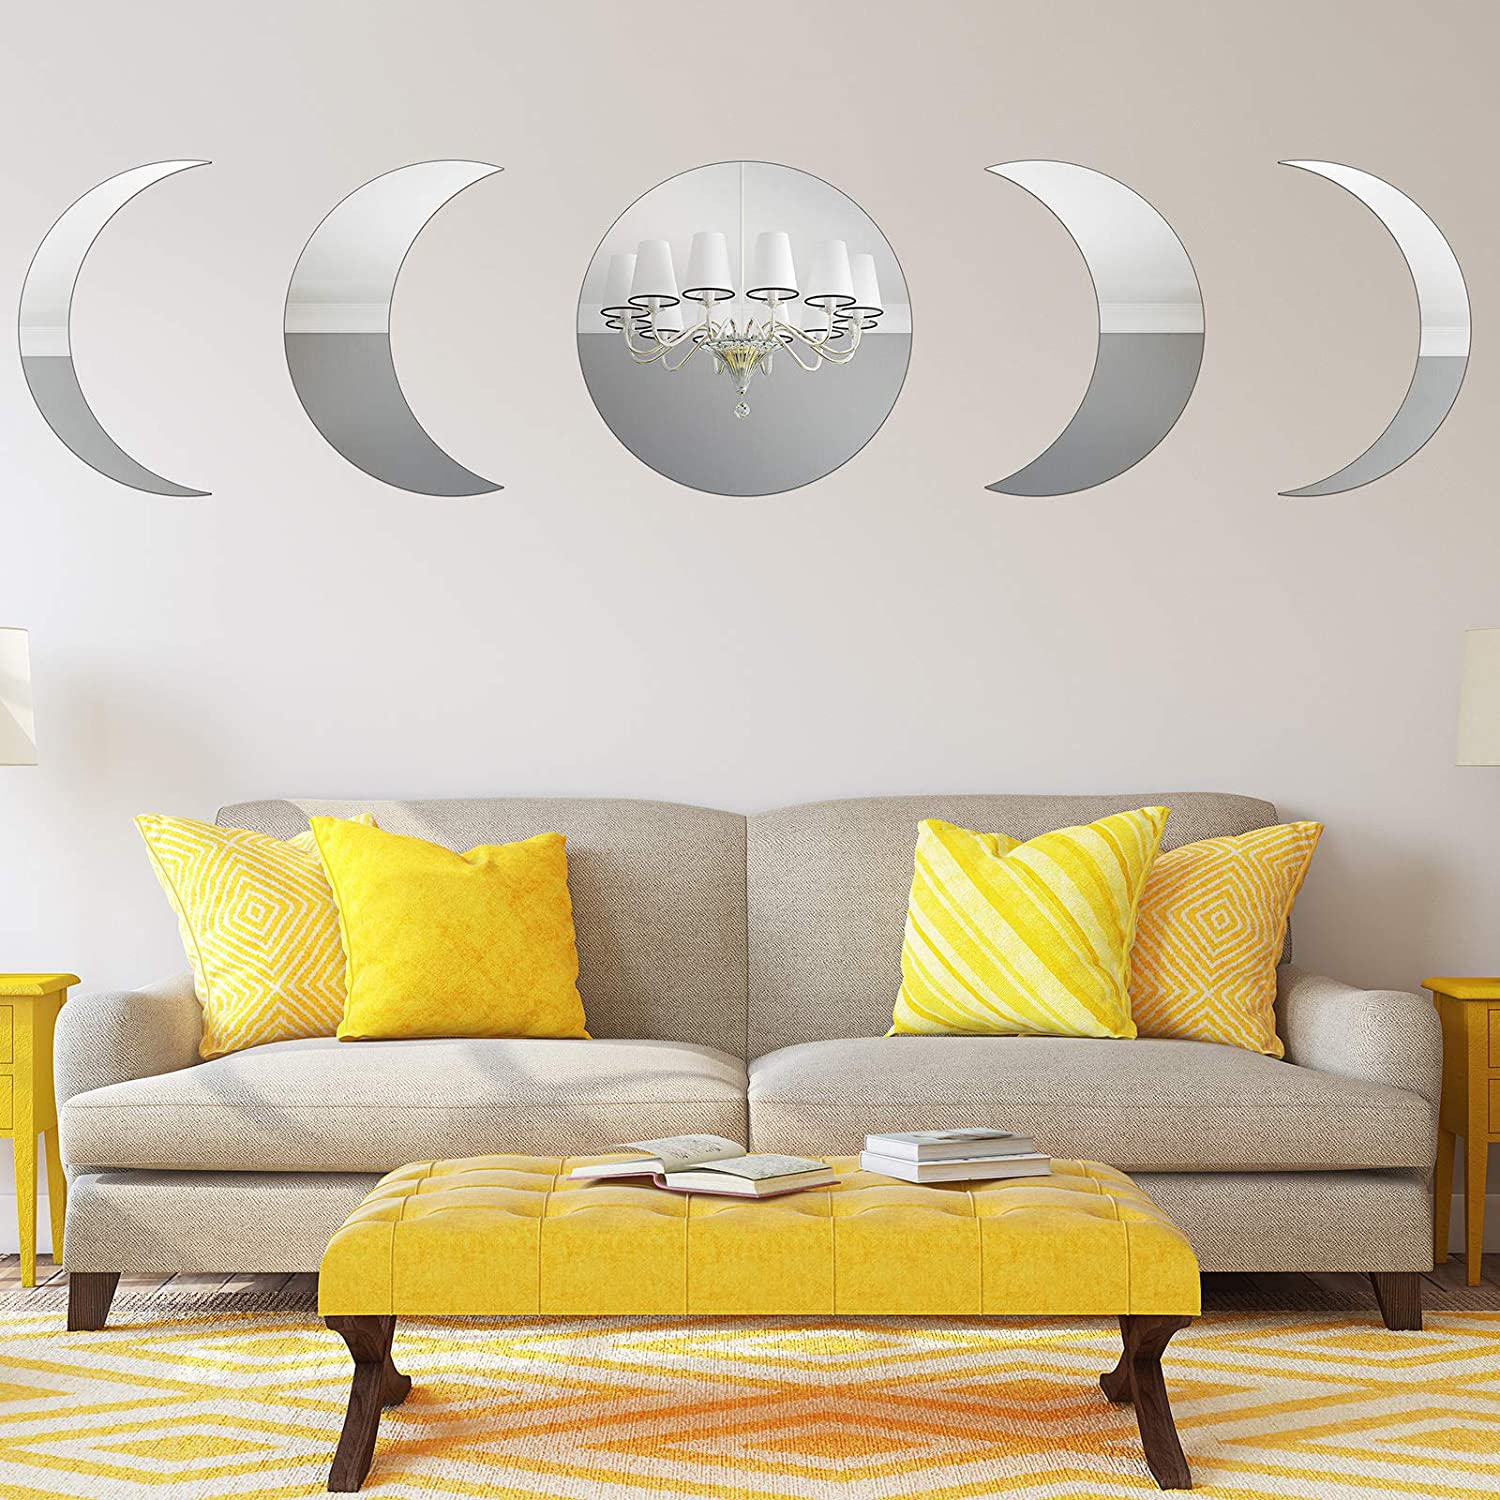 Jetec 5 Pieces Moon Phase Acrylic Mirror Wall Decors Scandinavian Frameless Mirror Wall Stickers Bohemian Home Decor for Living Room Bedroom Home Office